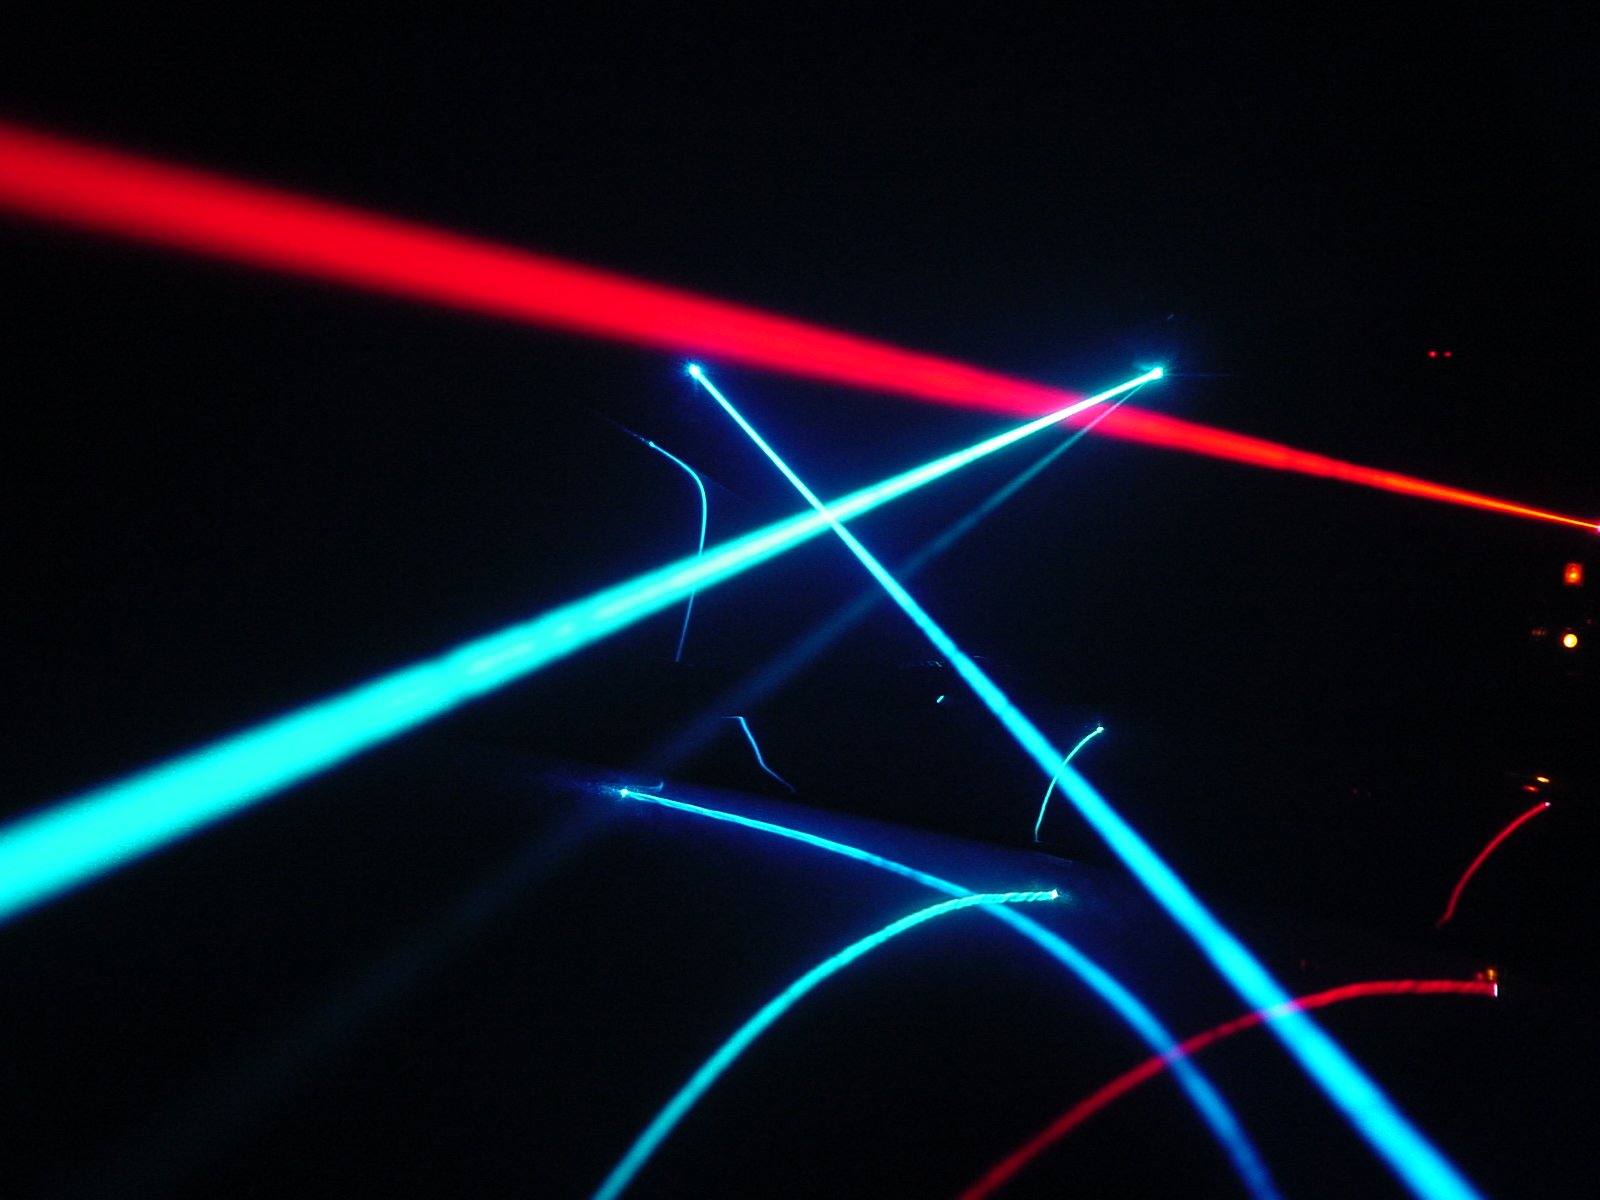 What is Excimer Laser? | Its Working | 3 Important Uses